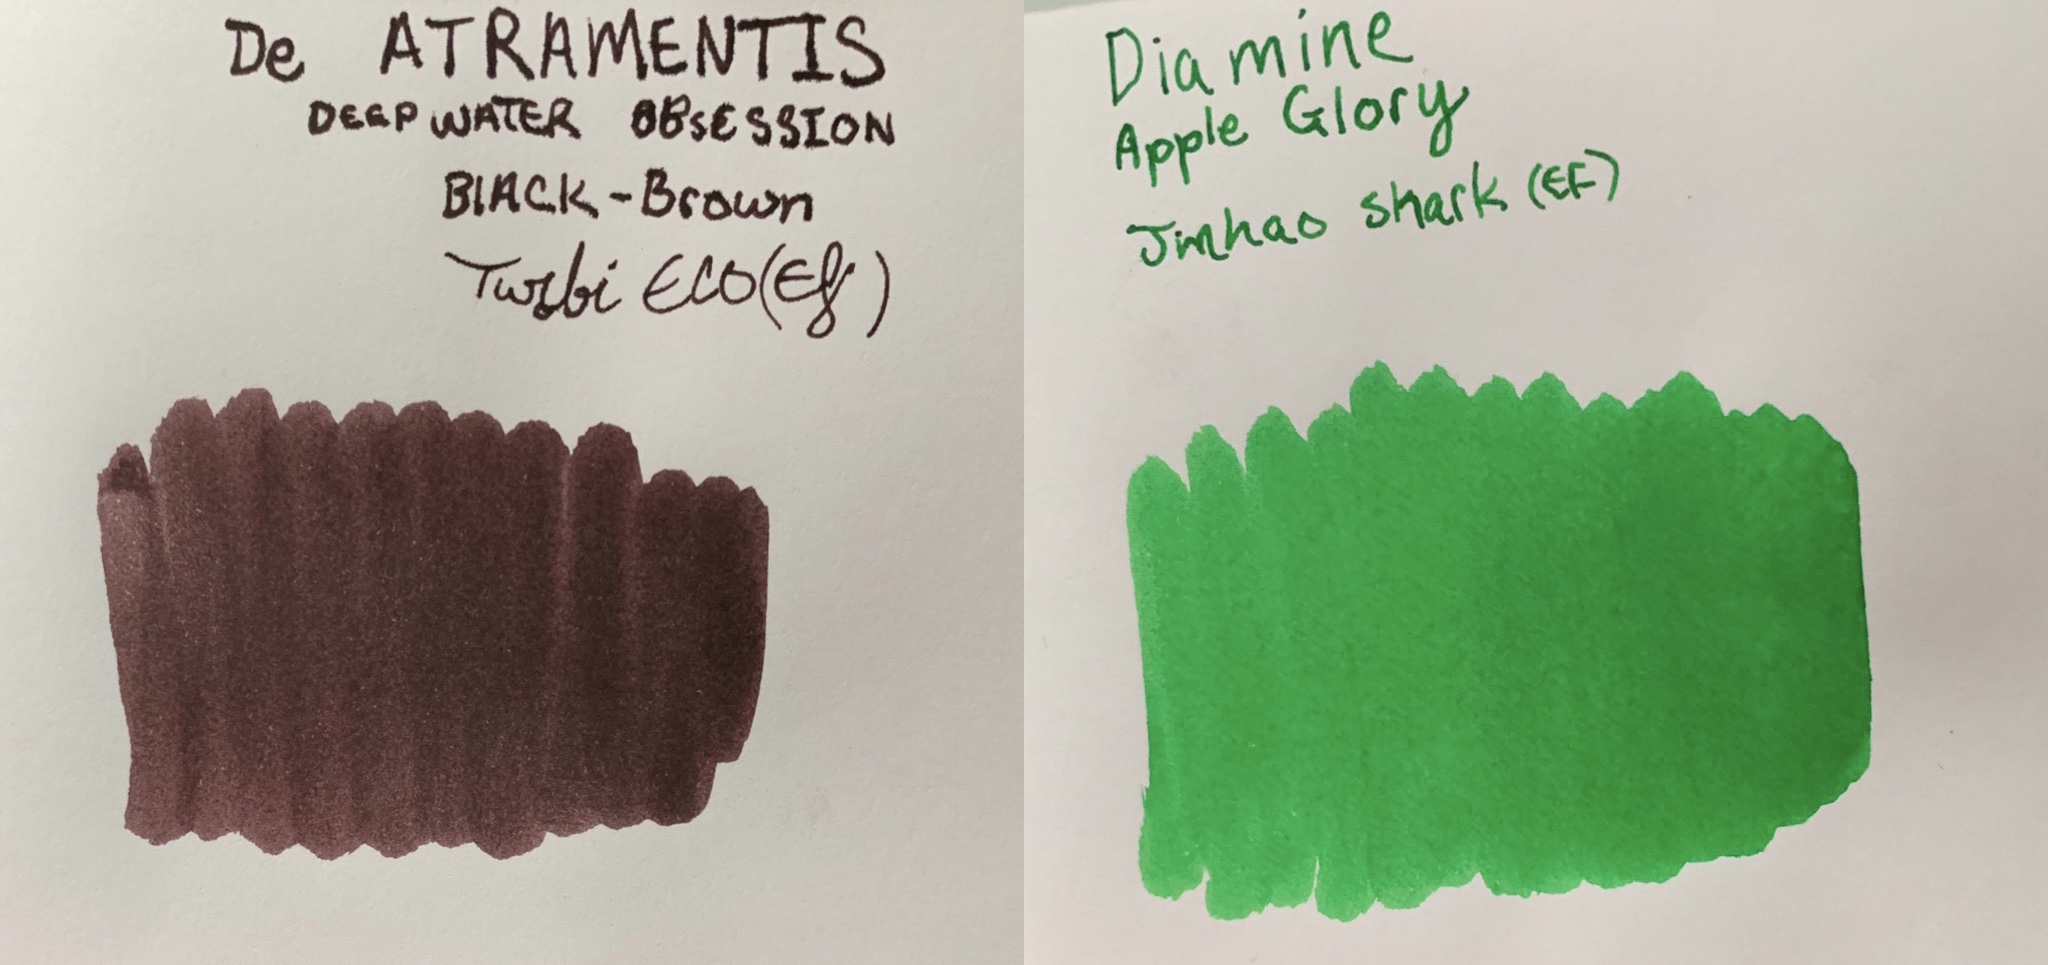 Inks: - De Atraments deepwater obsession (Black-brown) (originally bought on Goulet Pens as well, but they do not sell this ink anymore due to low demand. Jetpens sells it though)Random sampler of Diamine Apple Glory